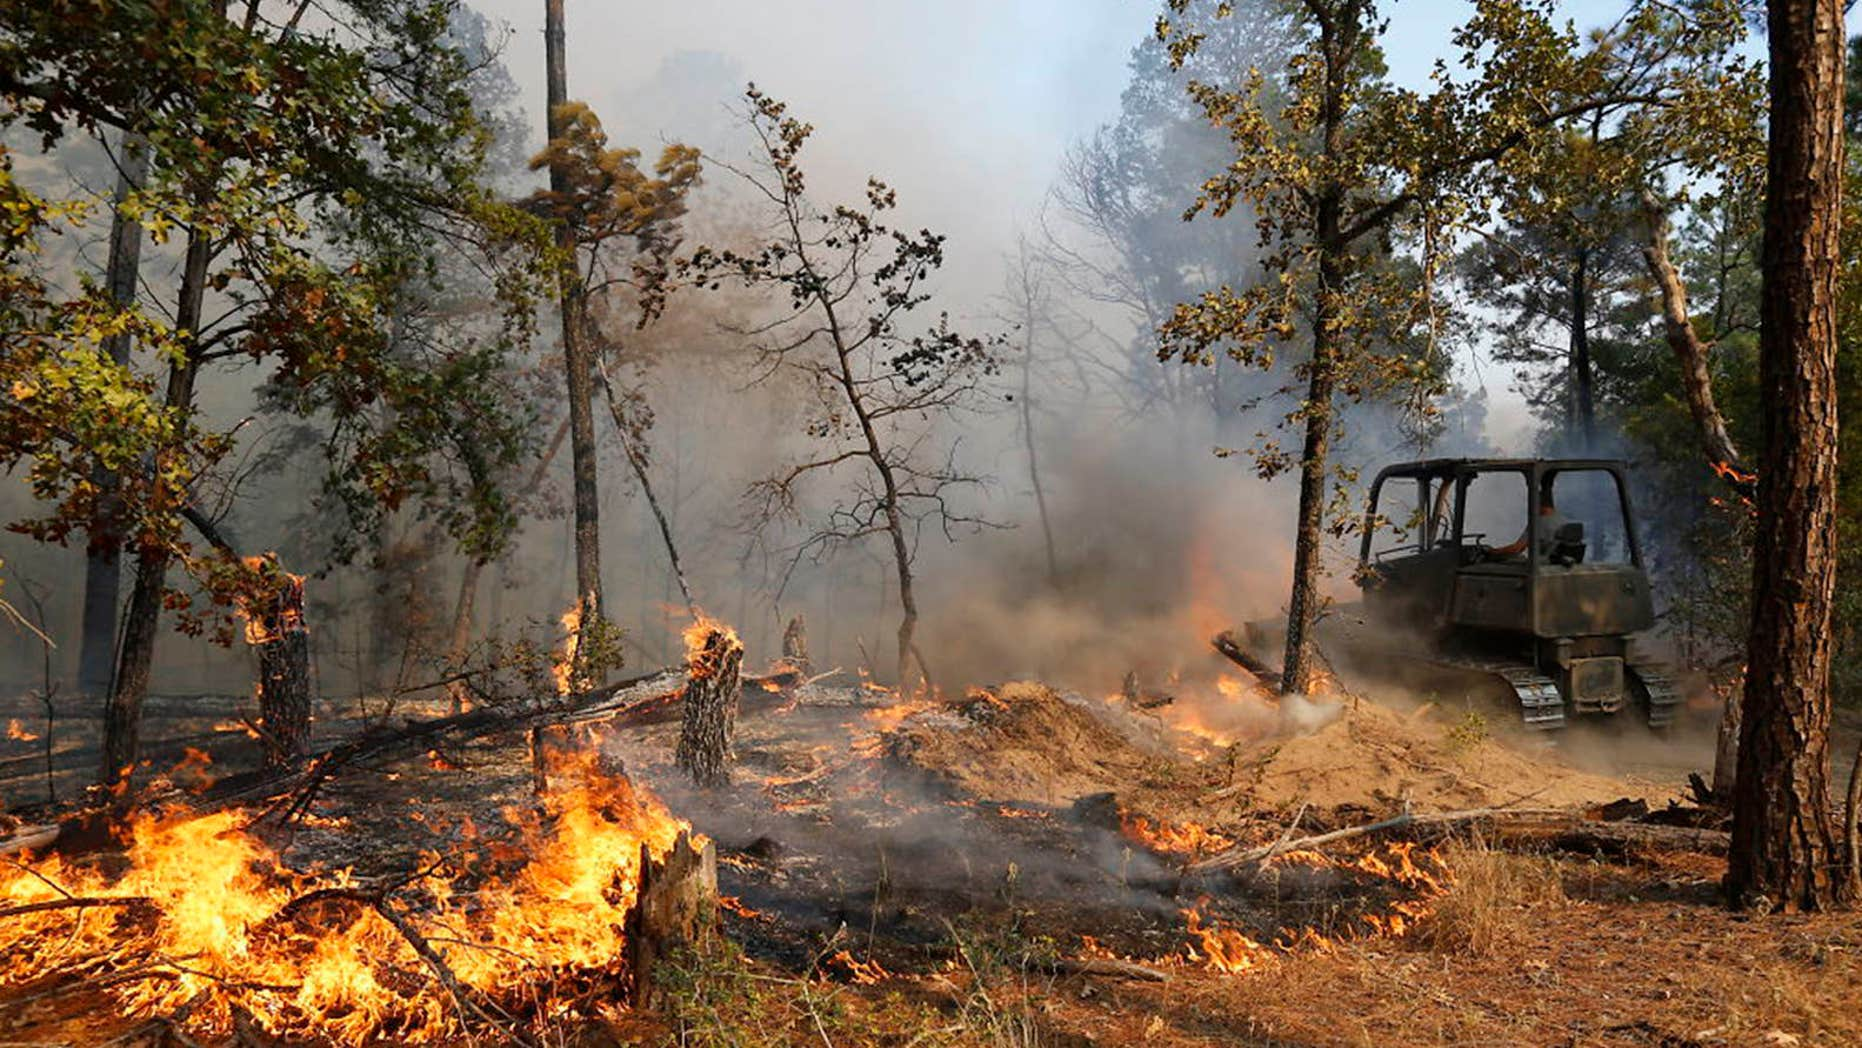 Oct. 14, 2015: Firefighters work with heavy machinery to contain the fire near Smithville, Texas.